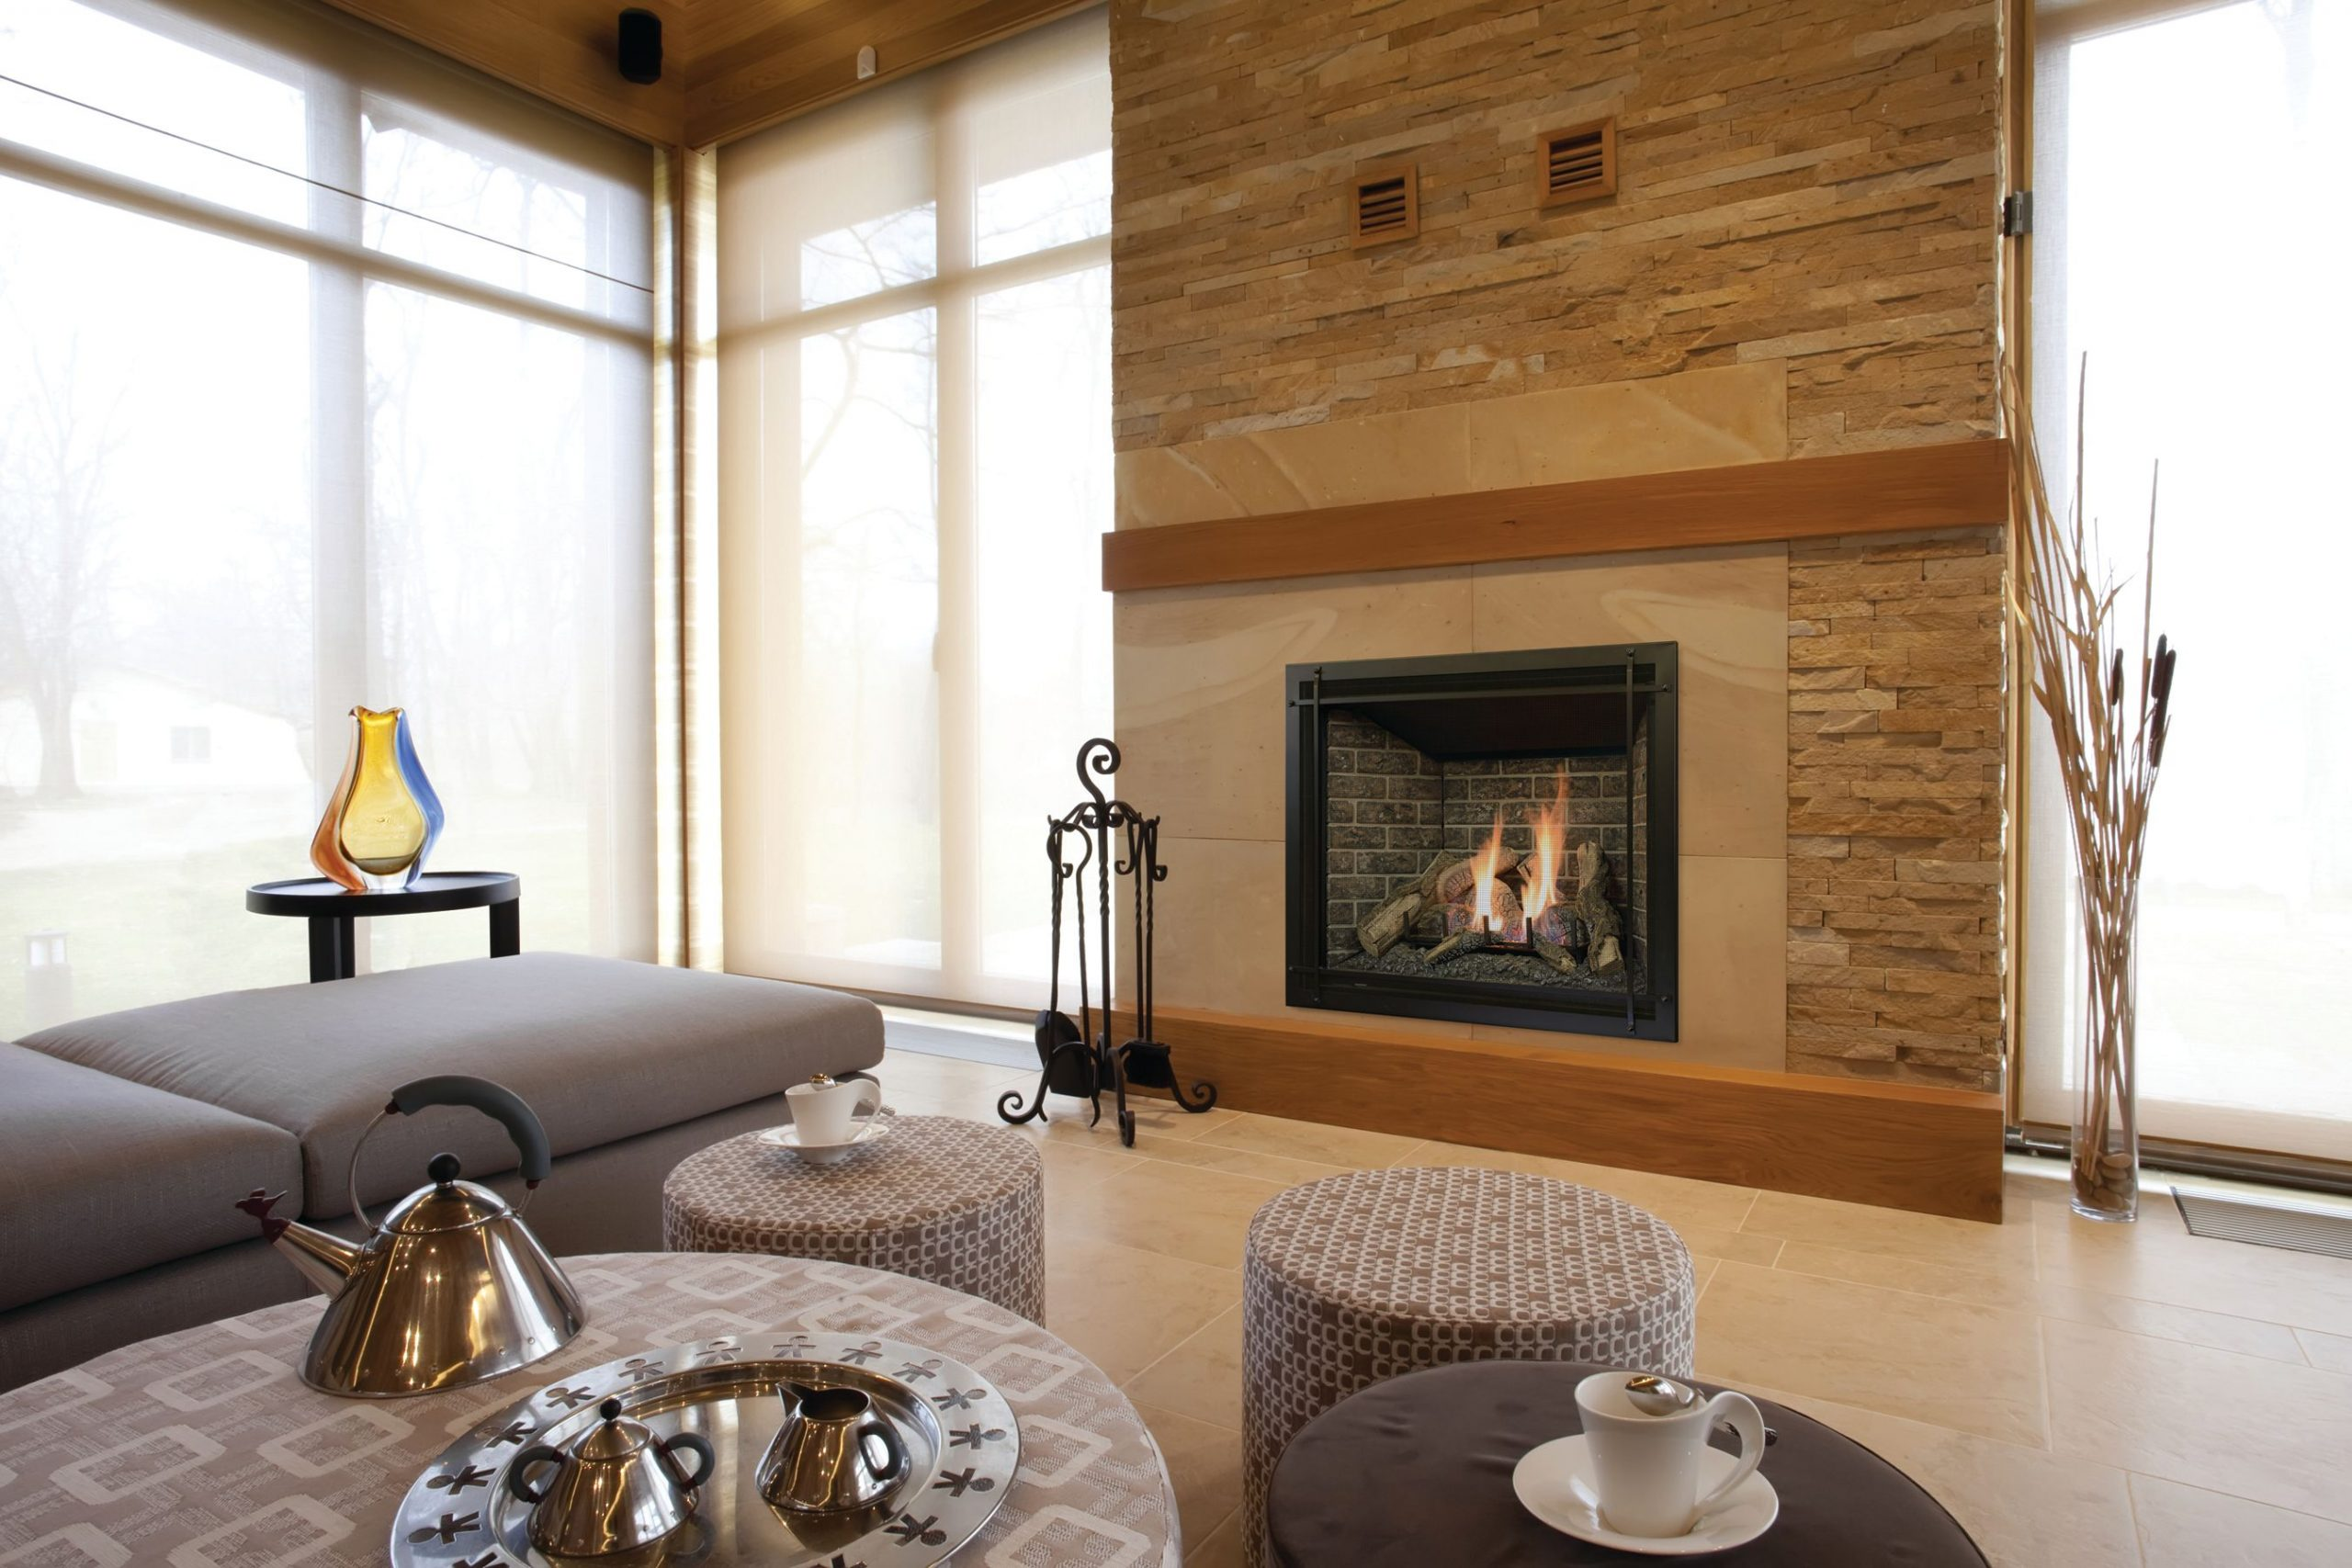 Will An Electric Fireplace Make My Energy Costs Go Up?